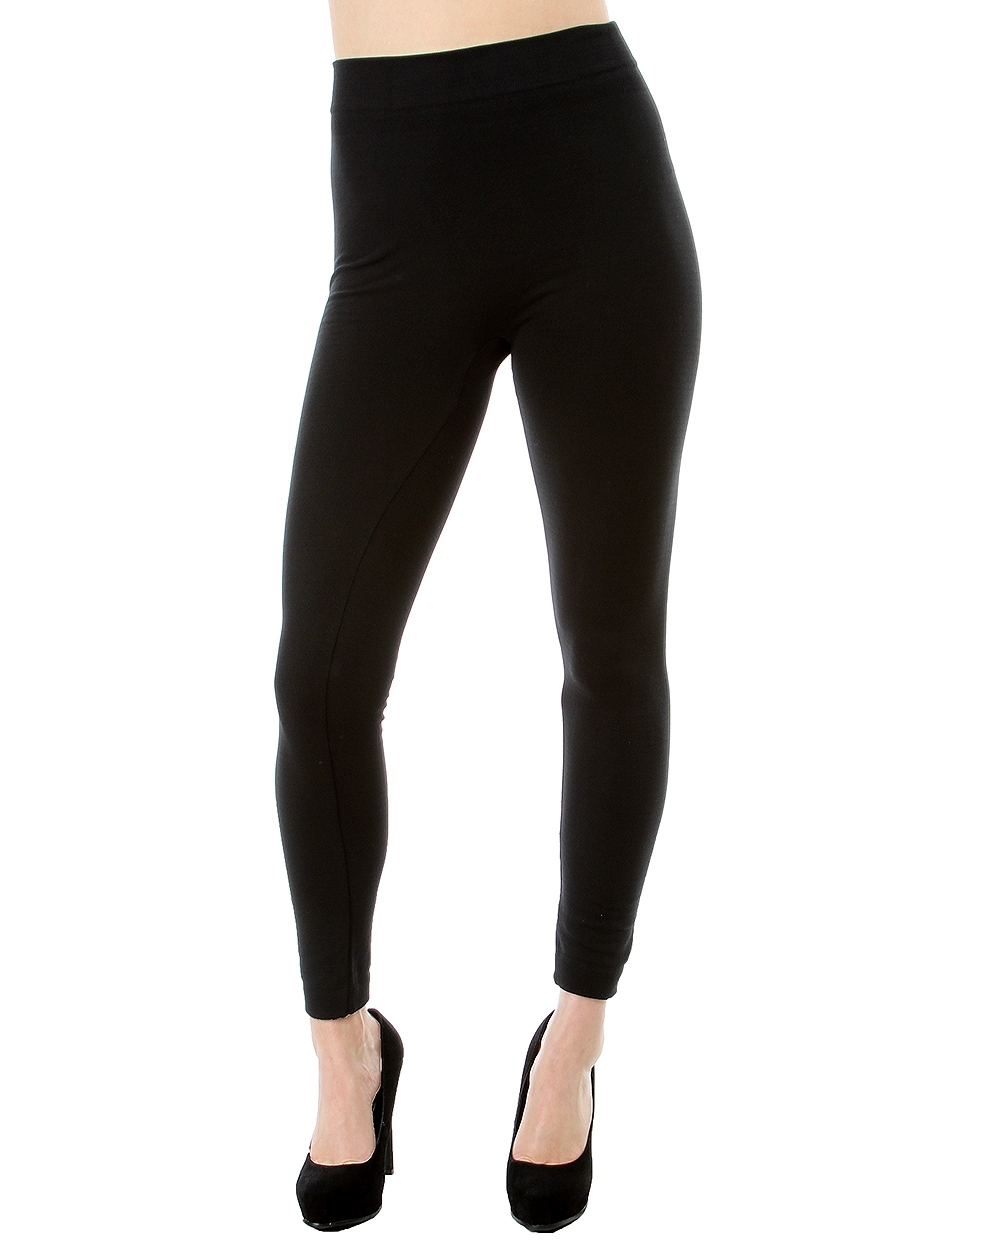 fleece legging black plus size fleece lined leggings SZNRCZI